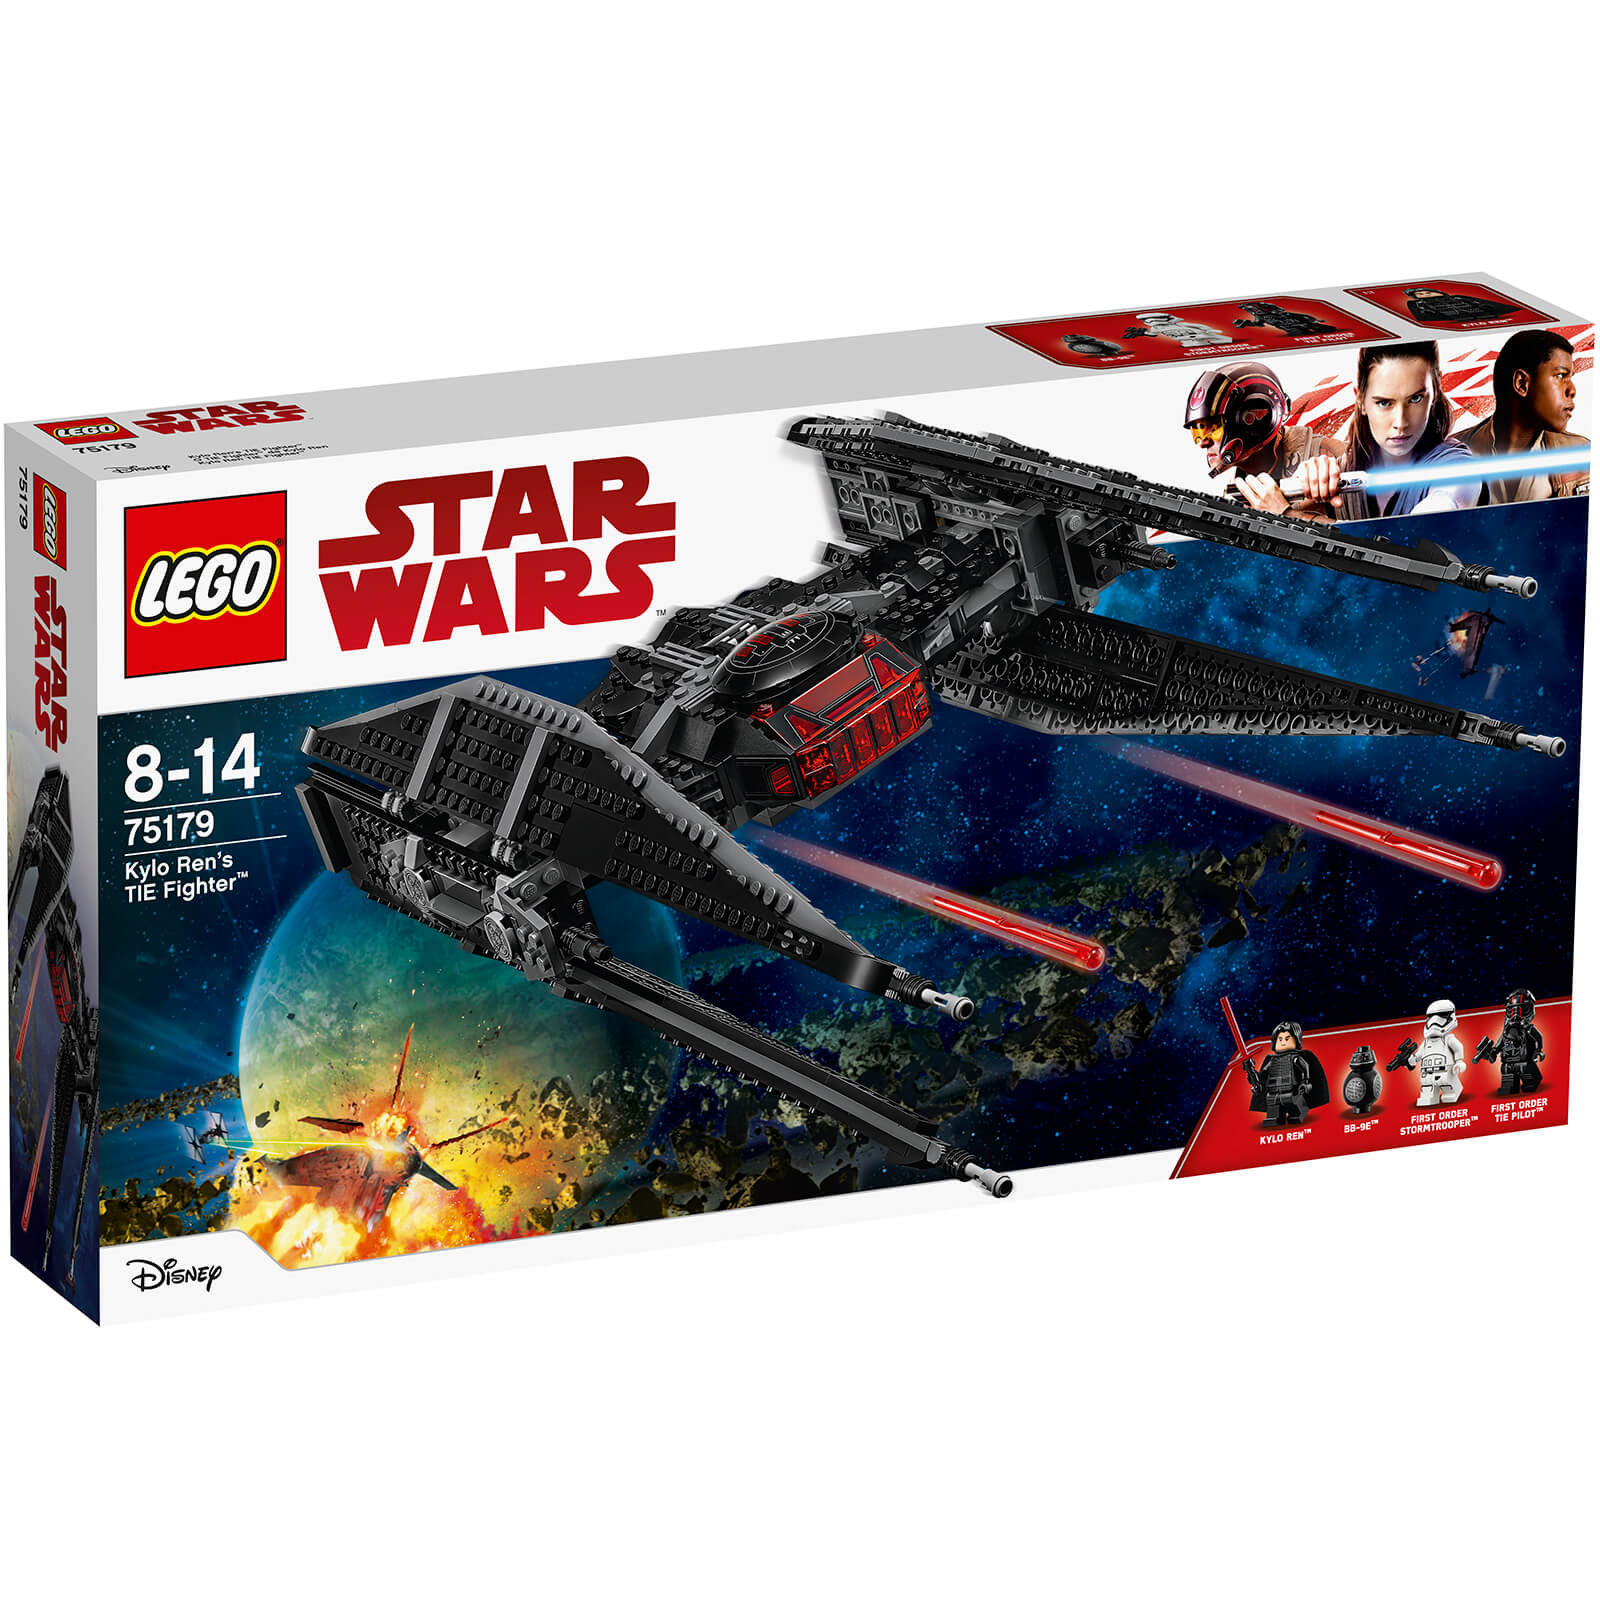 LEGO Star Wars Episode VIII: Kylo Ren